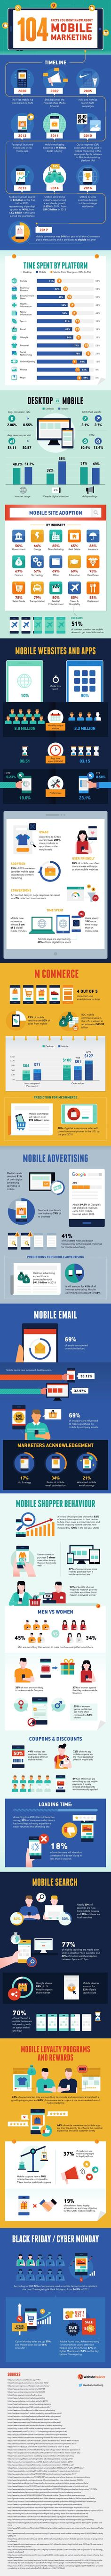 104 Facts You Didn't Know About Mobile Marketing (Infographic) Just last year, mobile devices overtook desktop in internet usage. Will You Work When You're Old? A Look at Employment Ages in the U.S. (Infographic) By providing consumers personalized information and promoting products and services directly to their phones, mobile marketing is a great resource for brands big and small.